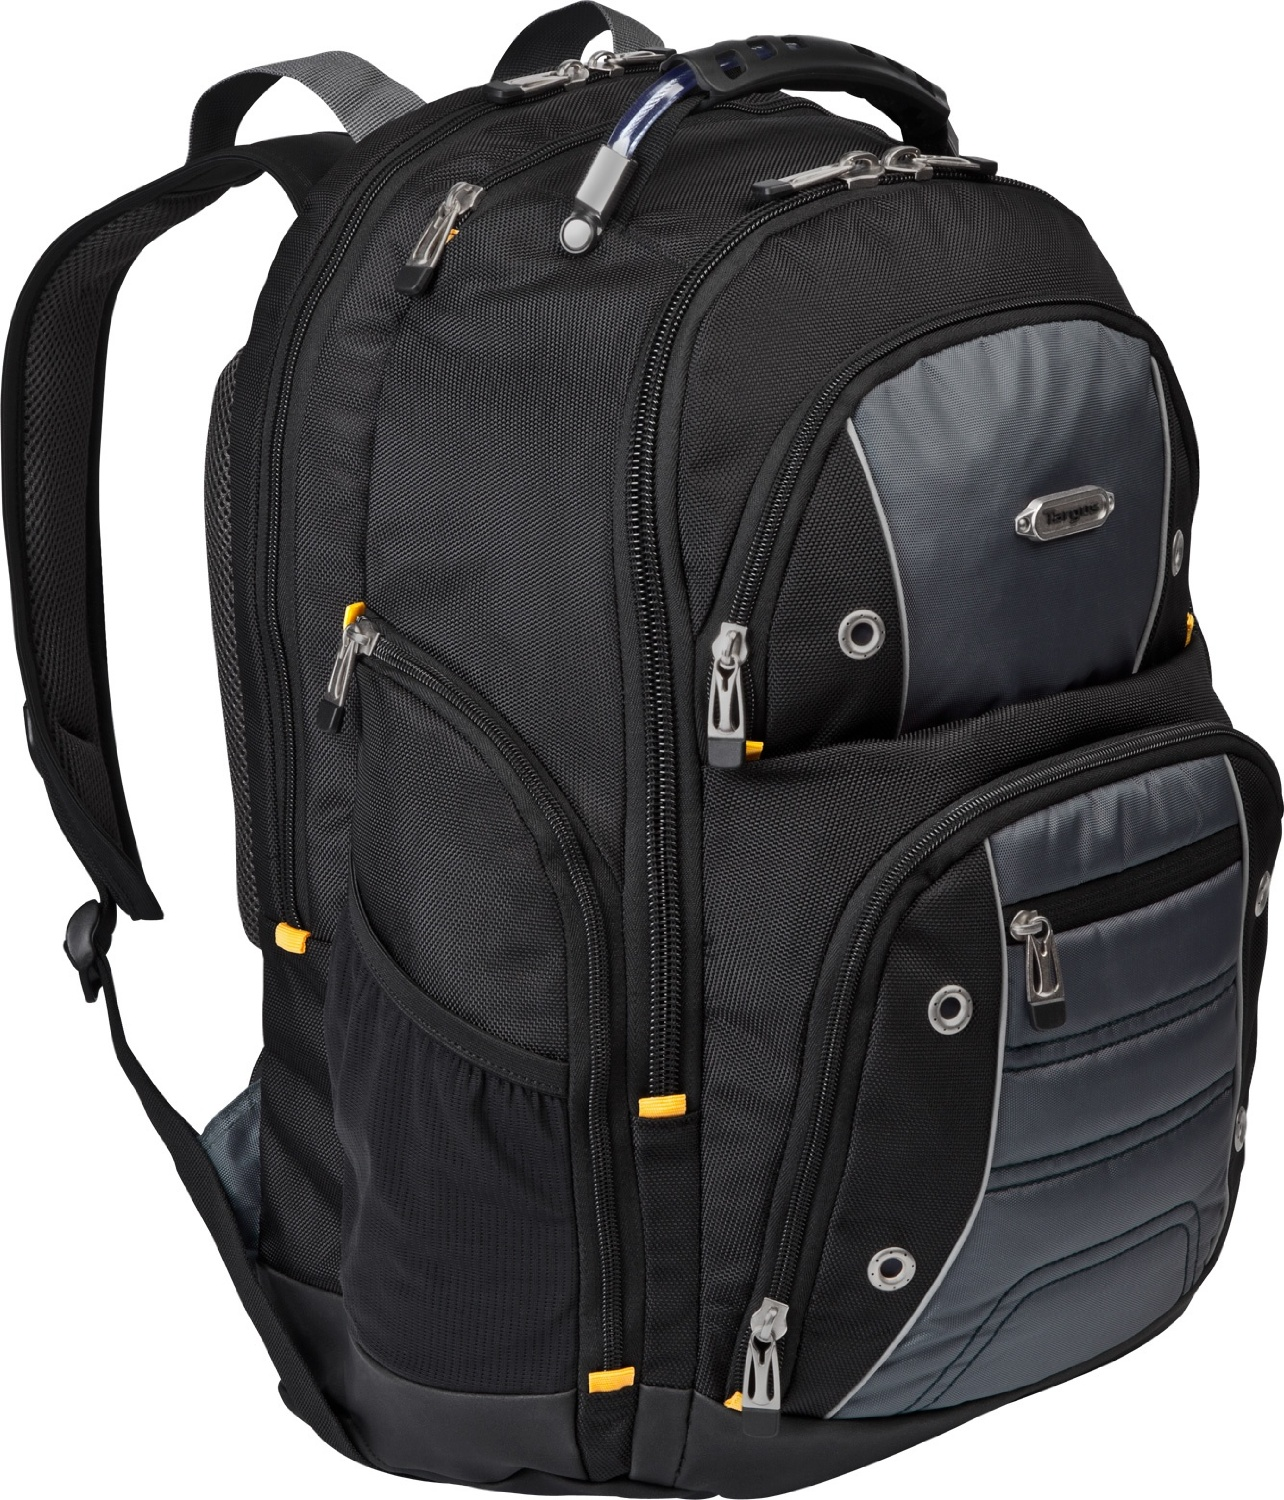 20 Inch Laptop Backpack Csz2EwPY